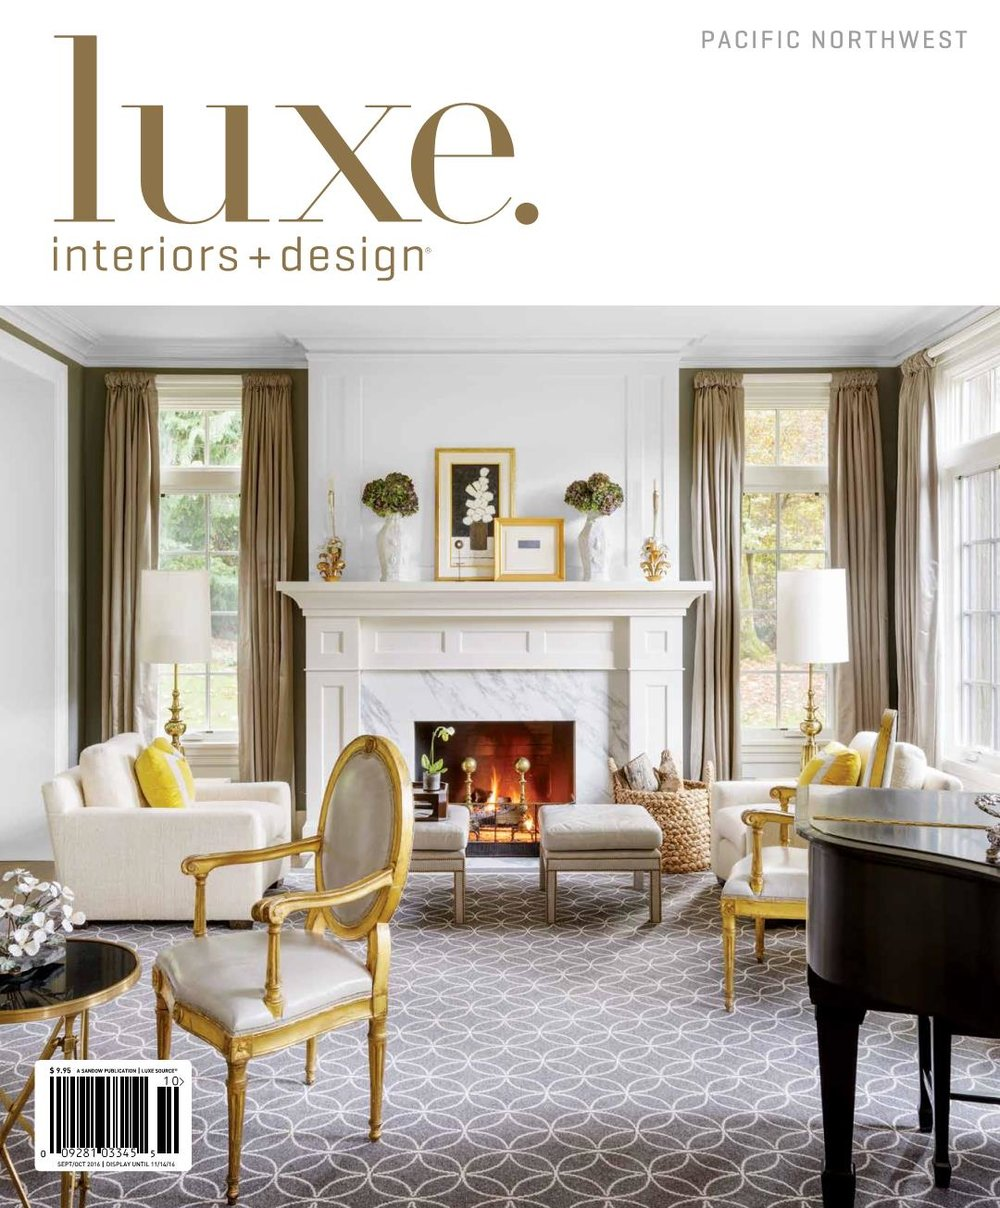 LUXE-MAGAZINE-AUGUST-2016-PNW-COVER.jpg